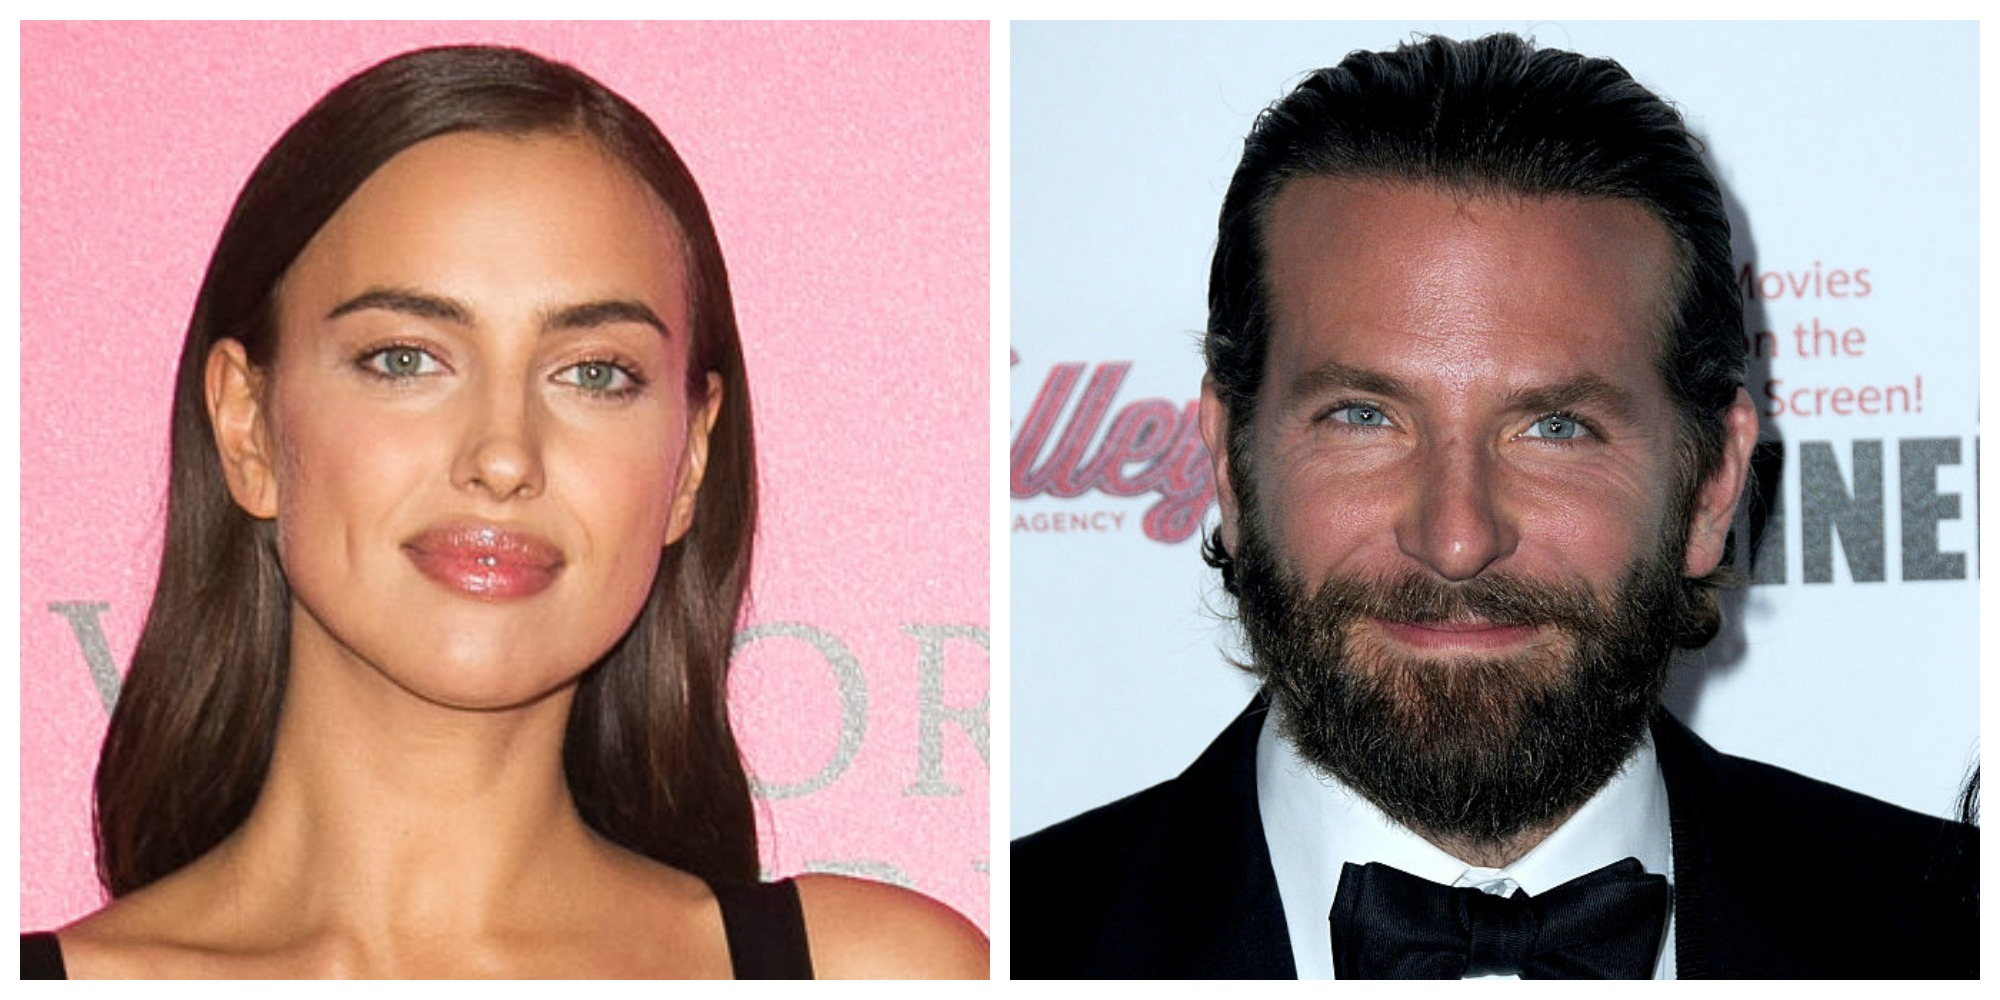 Bradley Cooper and Irina Shayk Welcome Their First Child Together